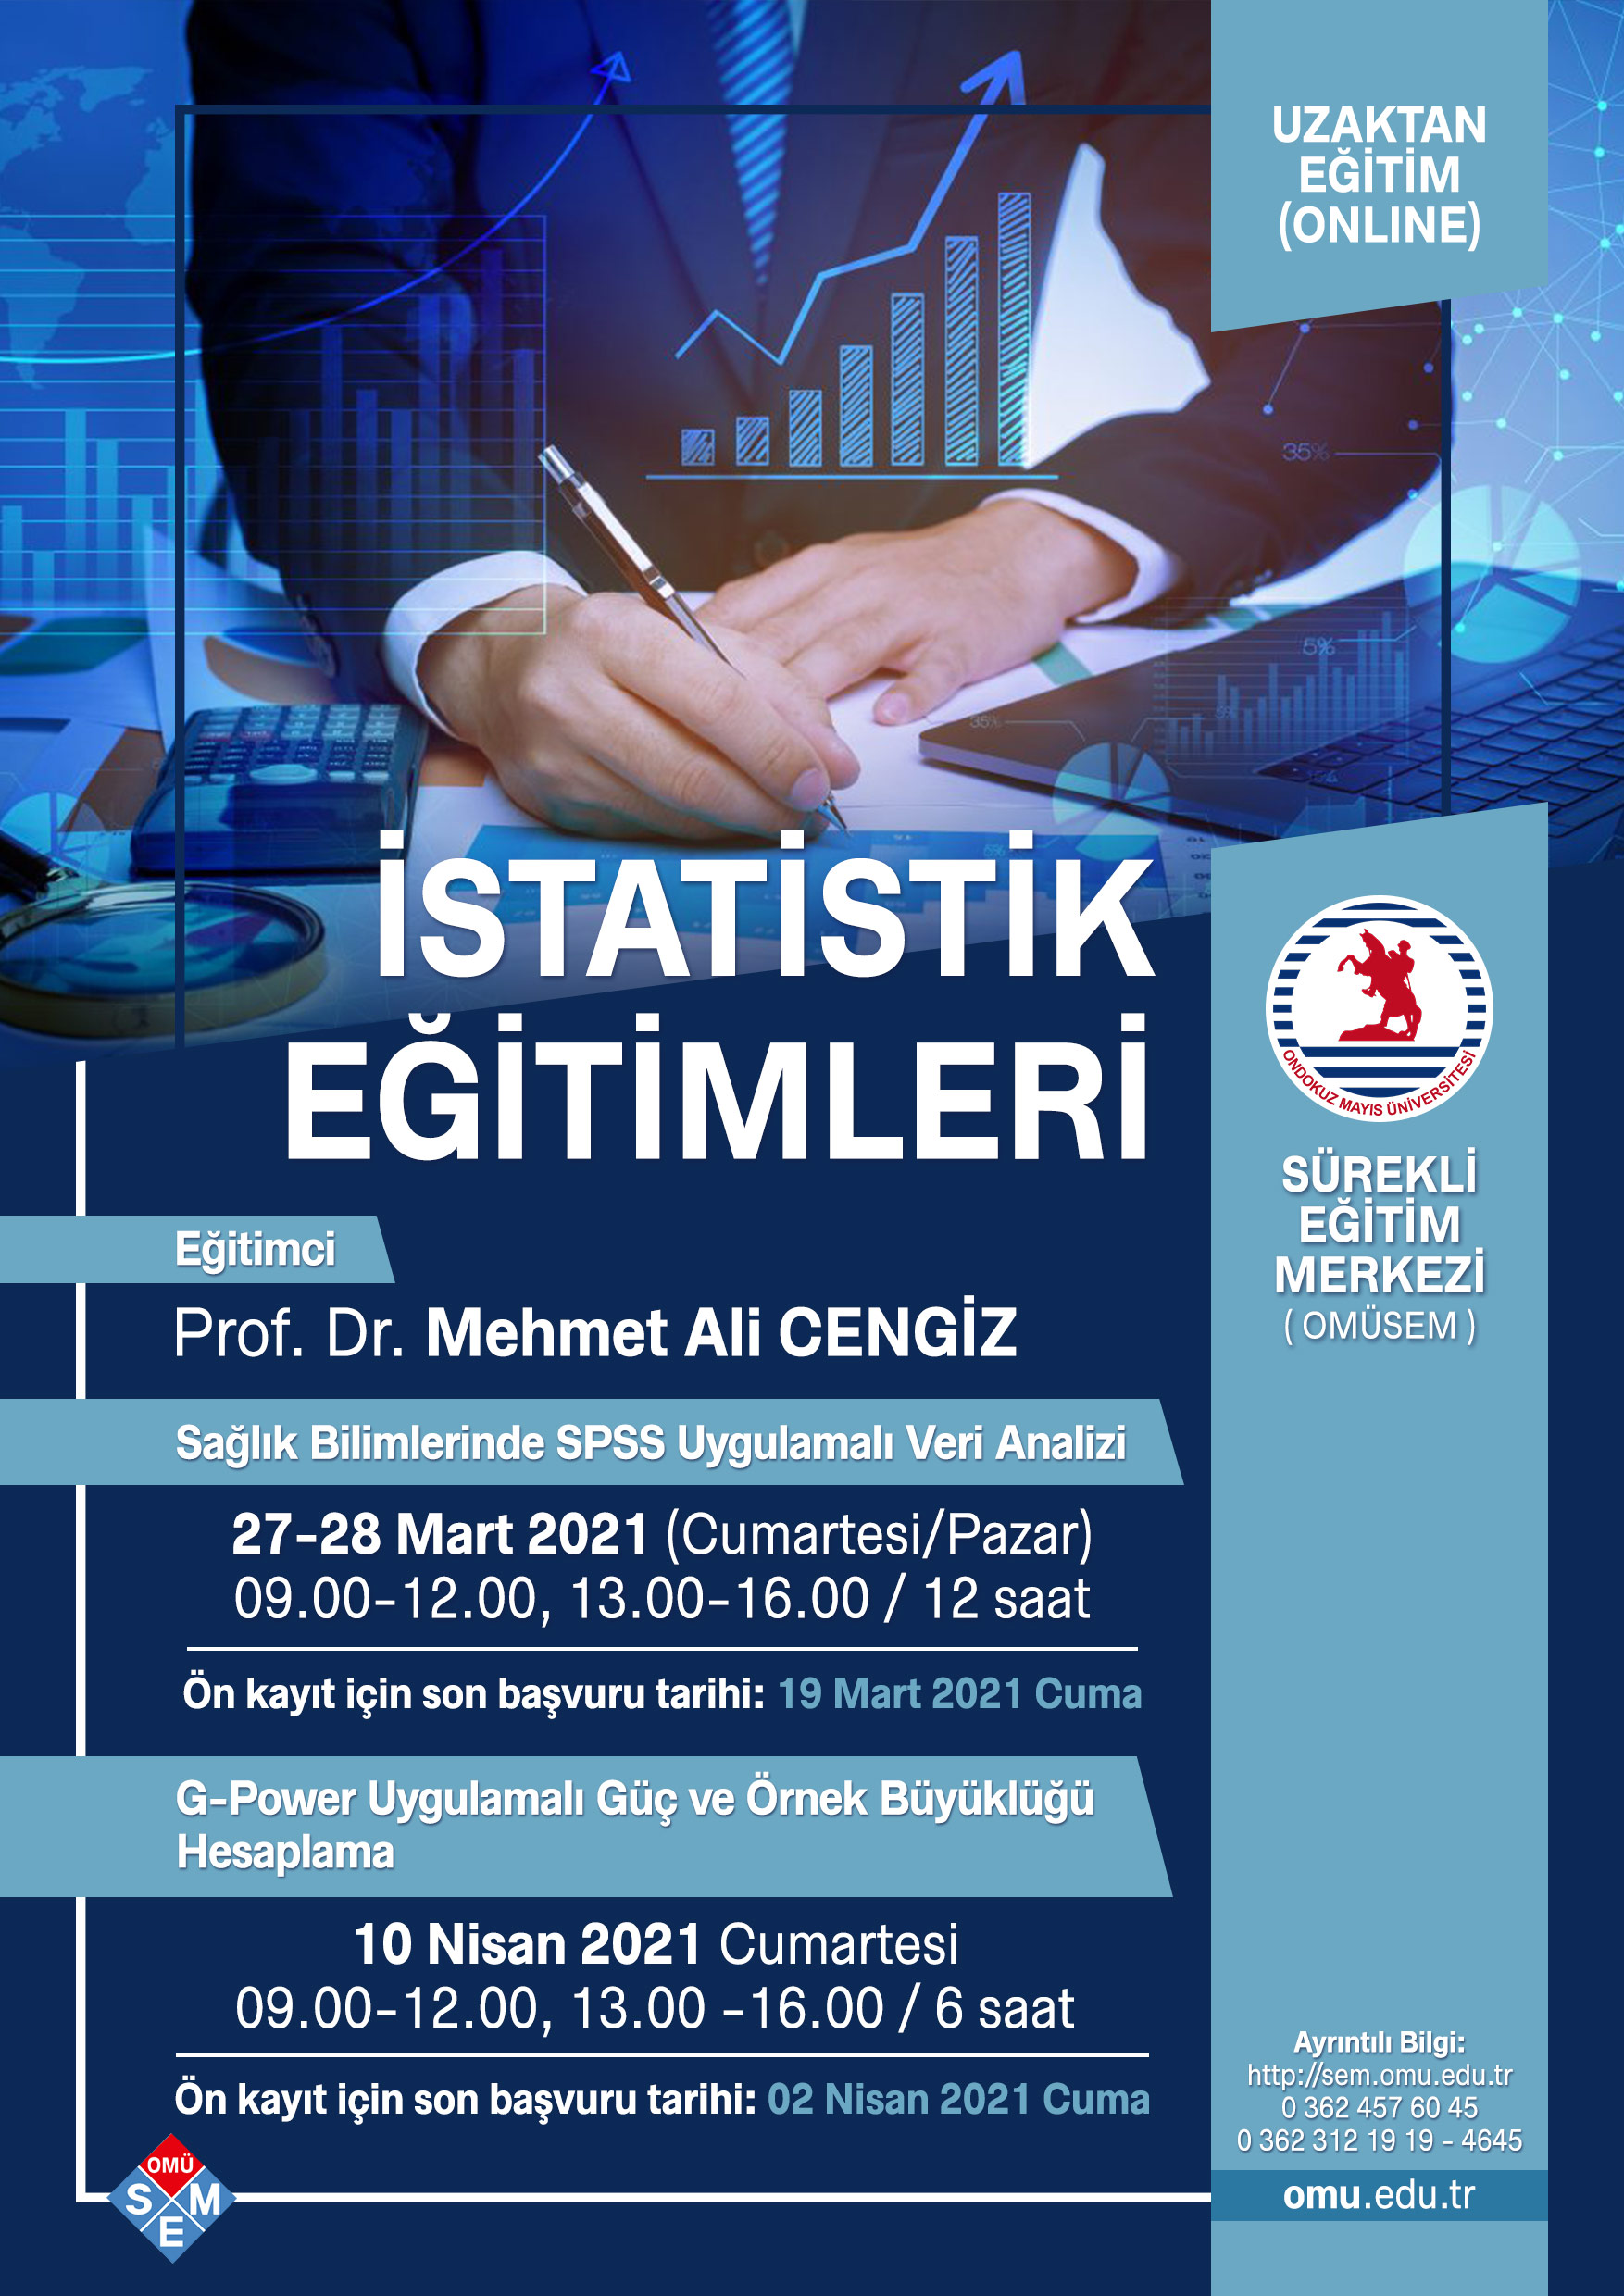 https://www.omu.edu.tr/sites/default/files/afis_2_2.jpg